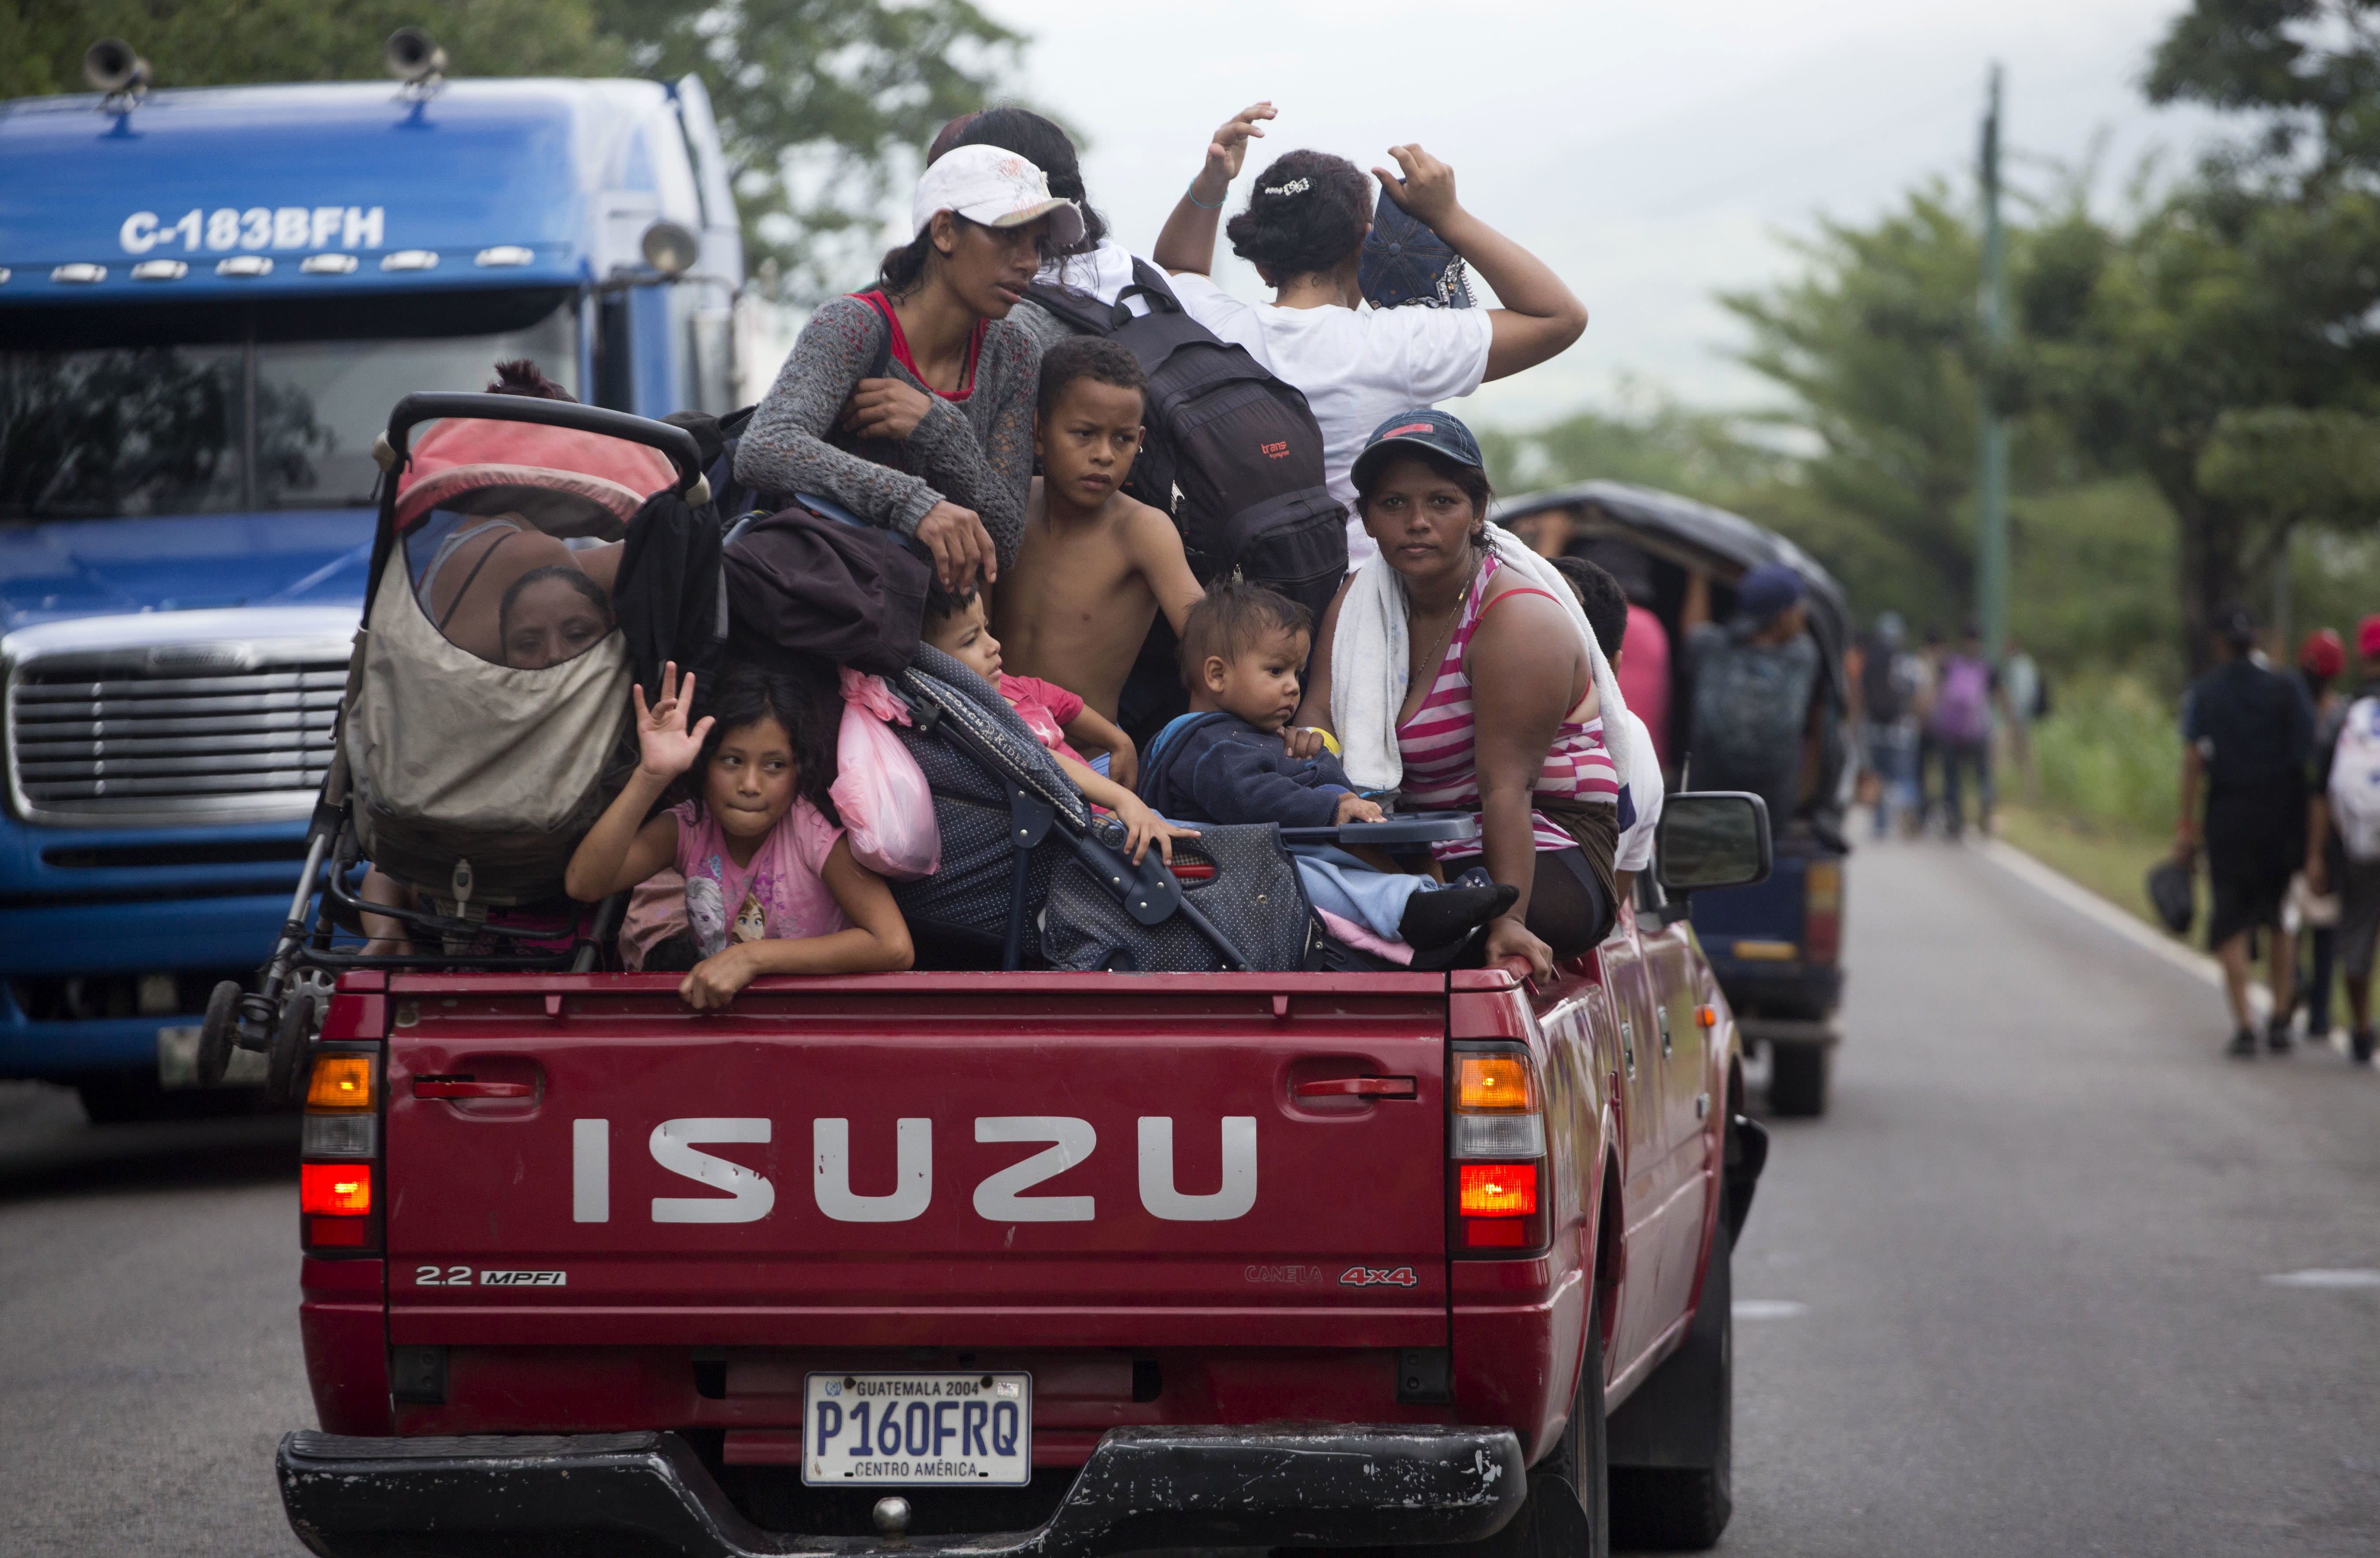 Honduran migrants who are traveling to the U.S. as a group get a free ride in the back of a driver's truck as they make their way through Zacapa, Guatemala, Wednesday, Oct. 17, 2018. The group of some 2,000 Honduran migrants hit the road in Guatemala again Wednesday, hoping to reach the United States despite President Donald Trump's threat to cut off aid to Central American countries that don't stop them. (AP Photo/Moises Castillo)